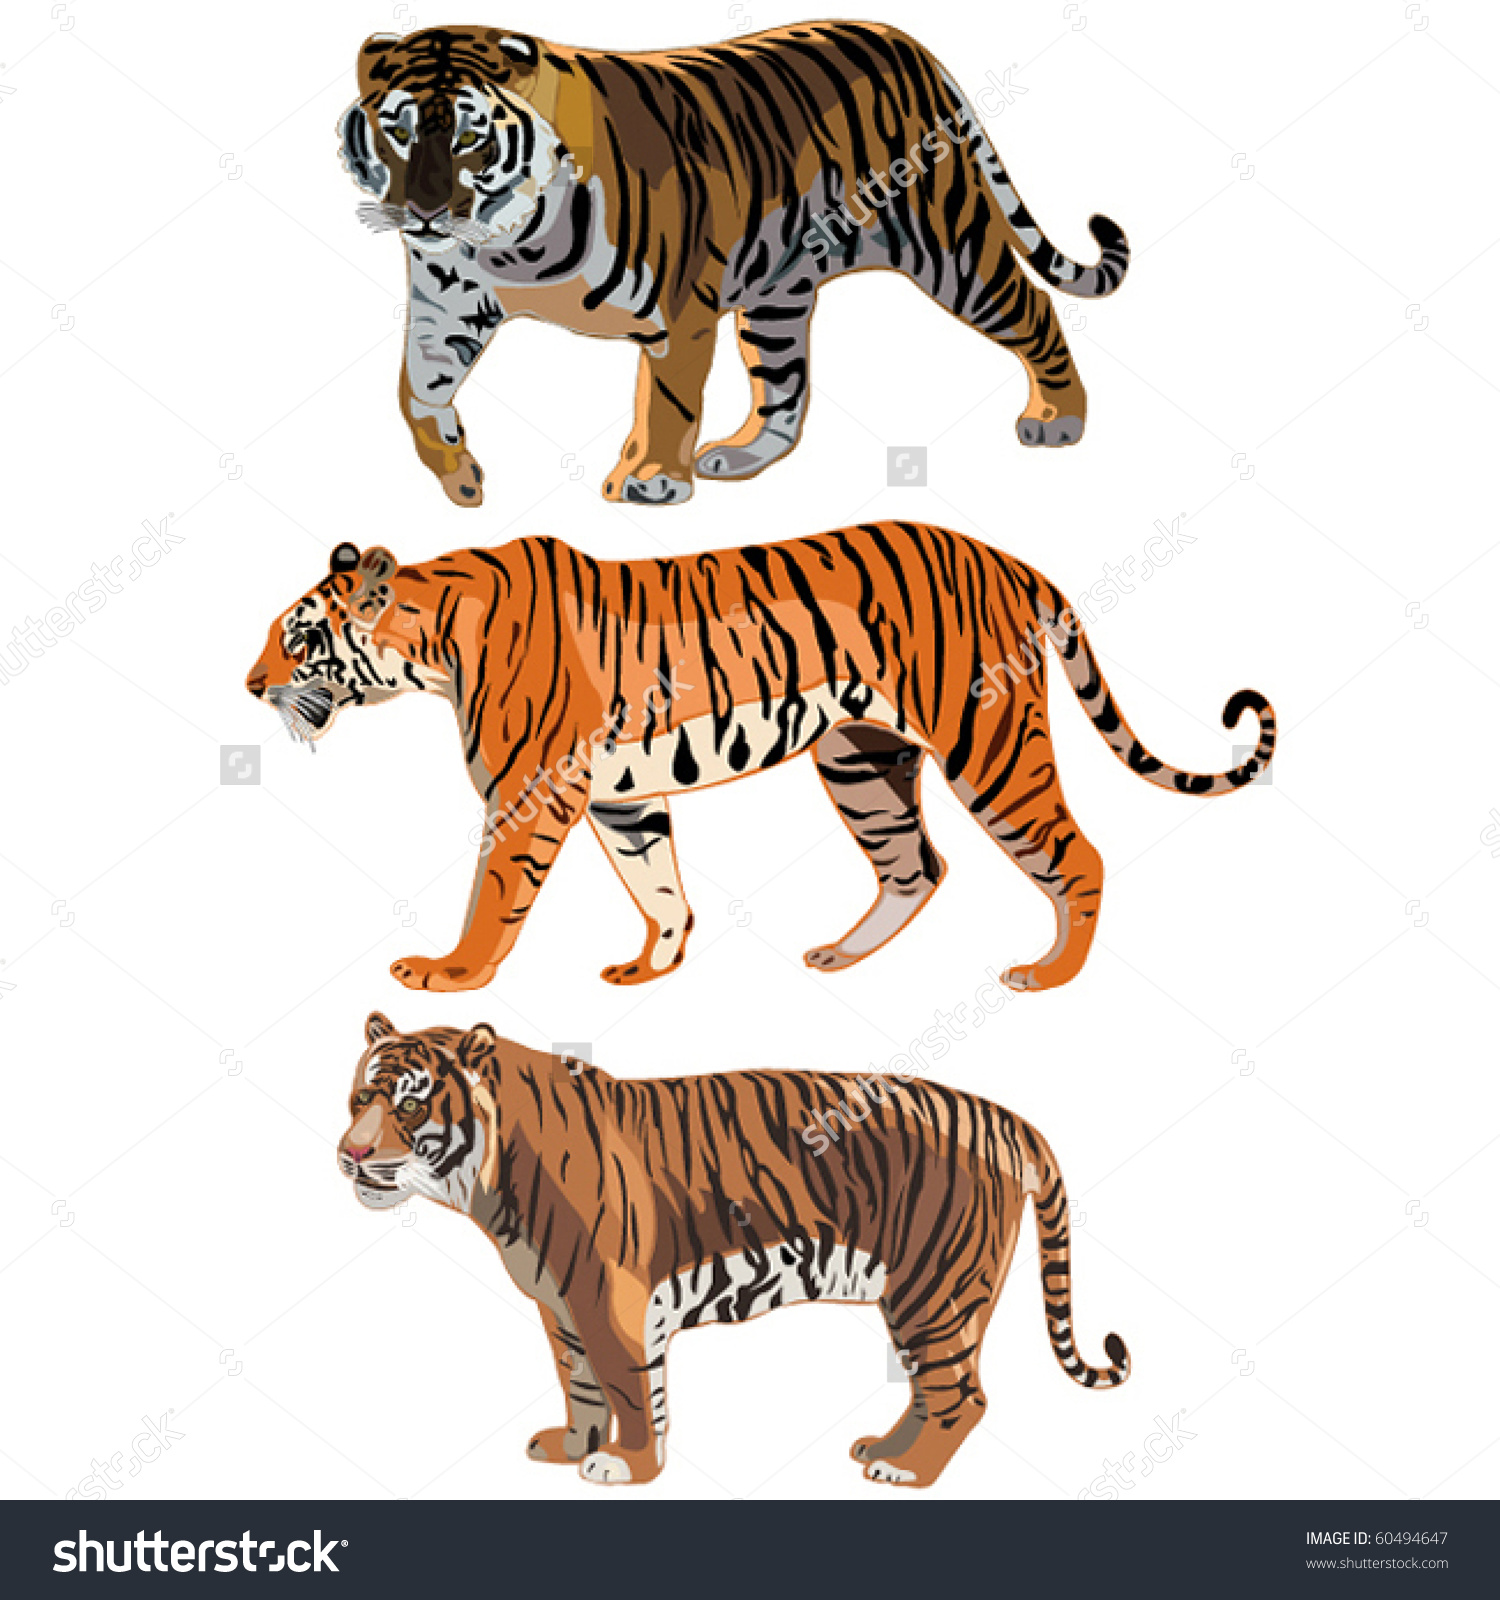 Sumatran Tiger clipart #9, Download drawings